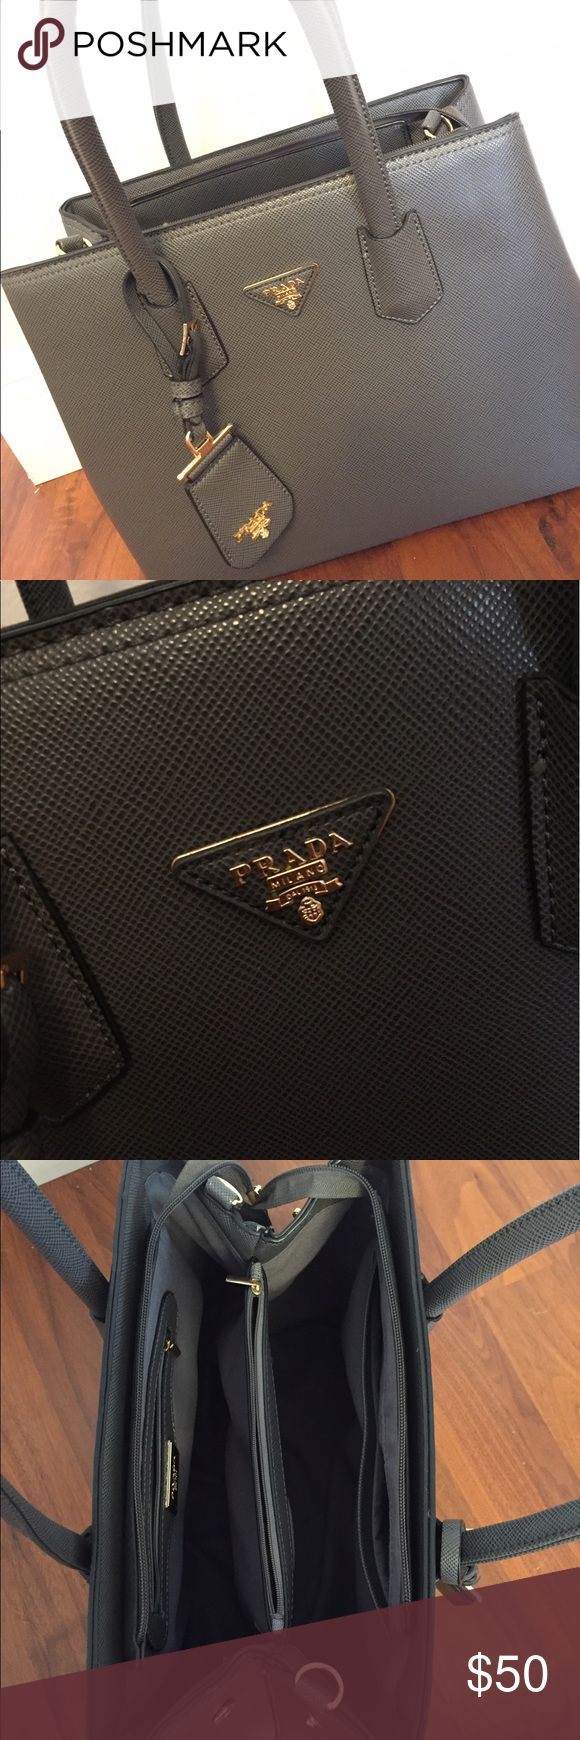 Beautiful Prada Purse for sale Gray Prada Purse for sale (dont ask the obvious) with a lot of space usea once Bags Clutches & Wristlets